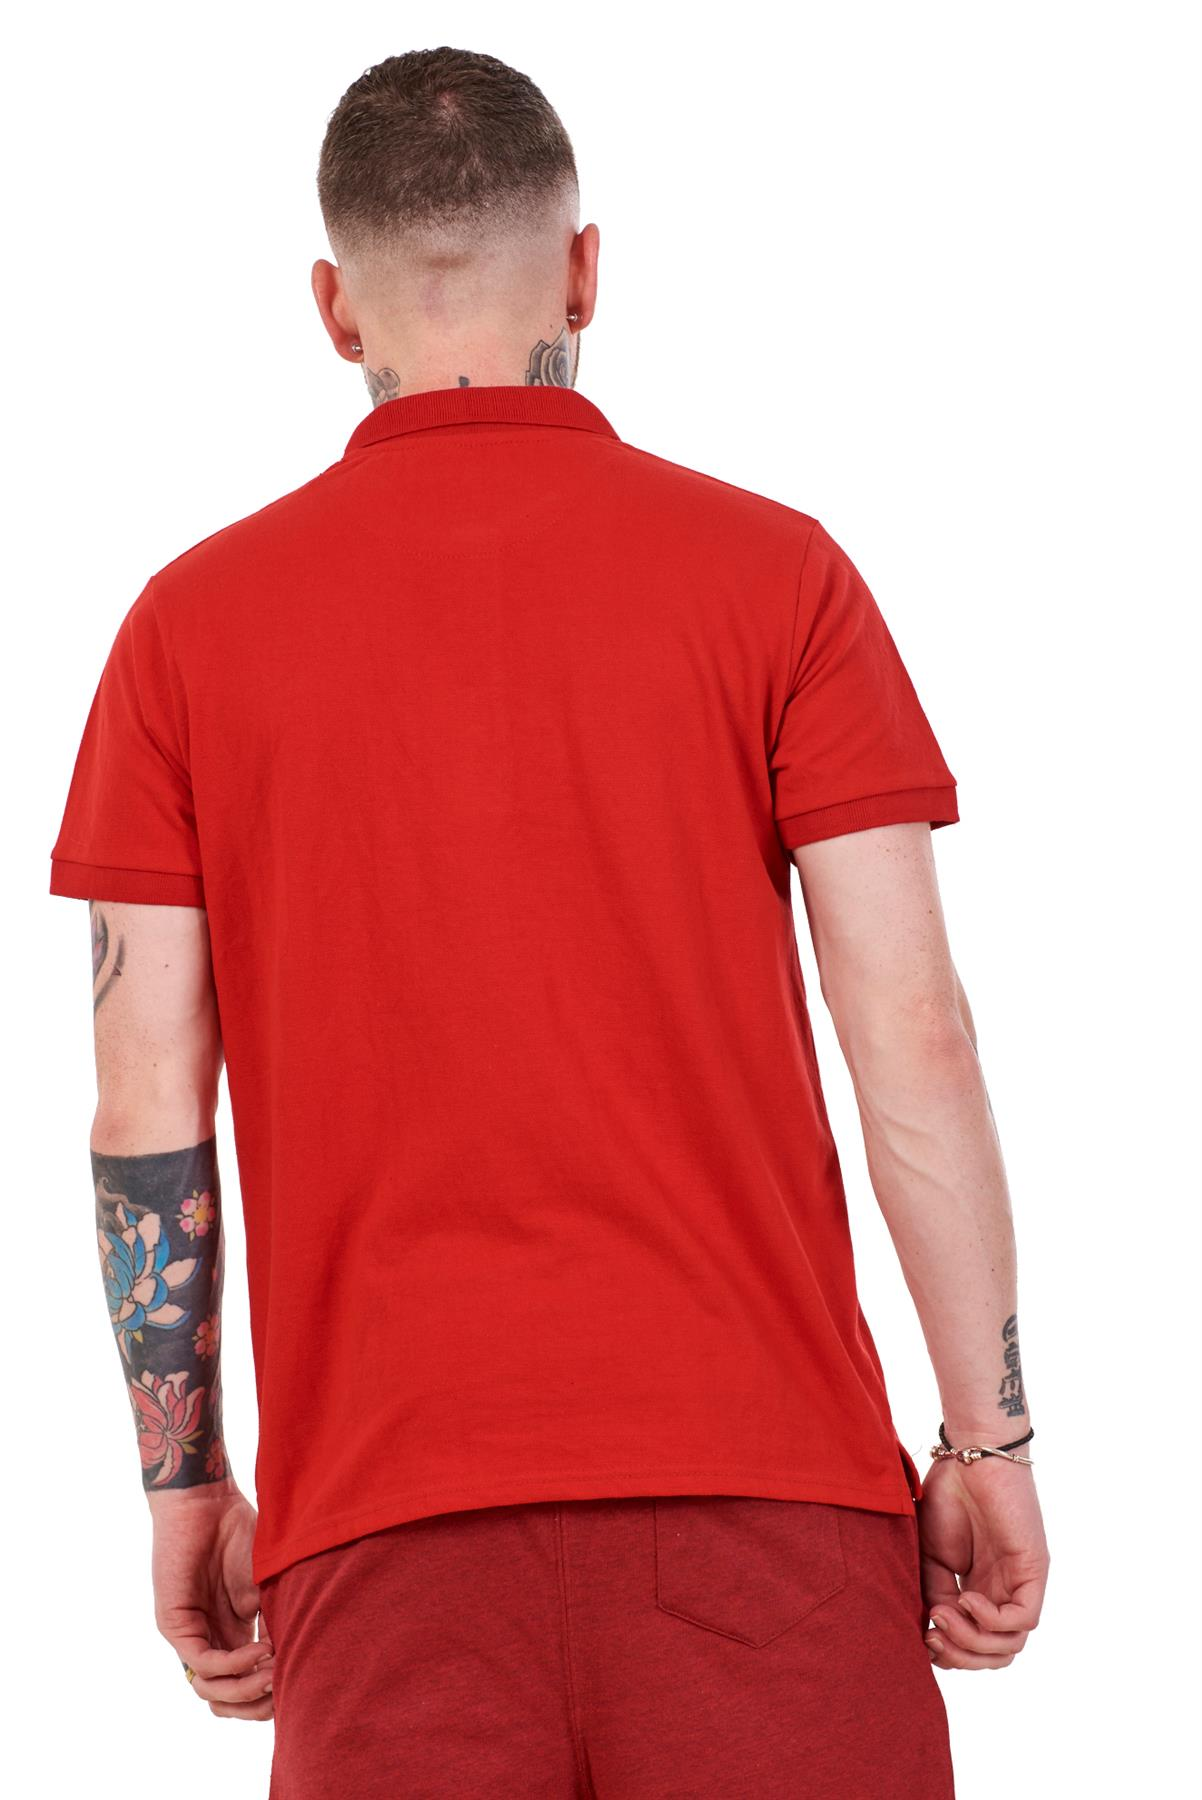 Mens-Plain-Solid-Polo-Cotton-T-Shirts-Regular-fit-Casual-Formal-Shirt-Top-M-XXL thumbnail 28